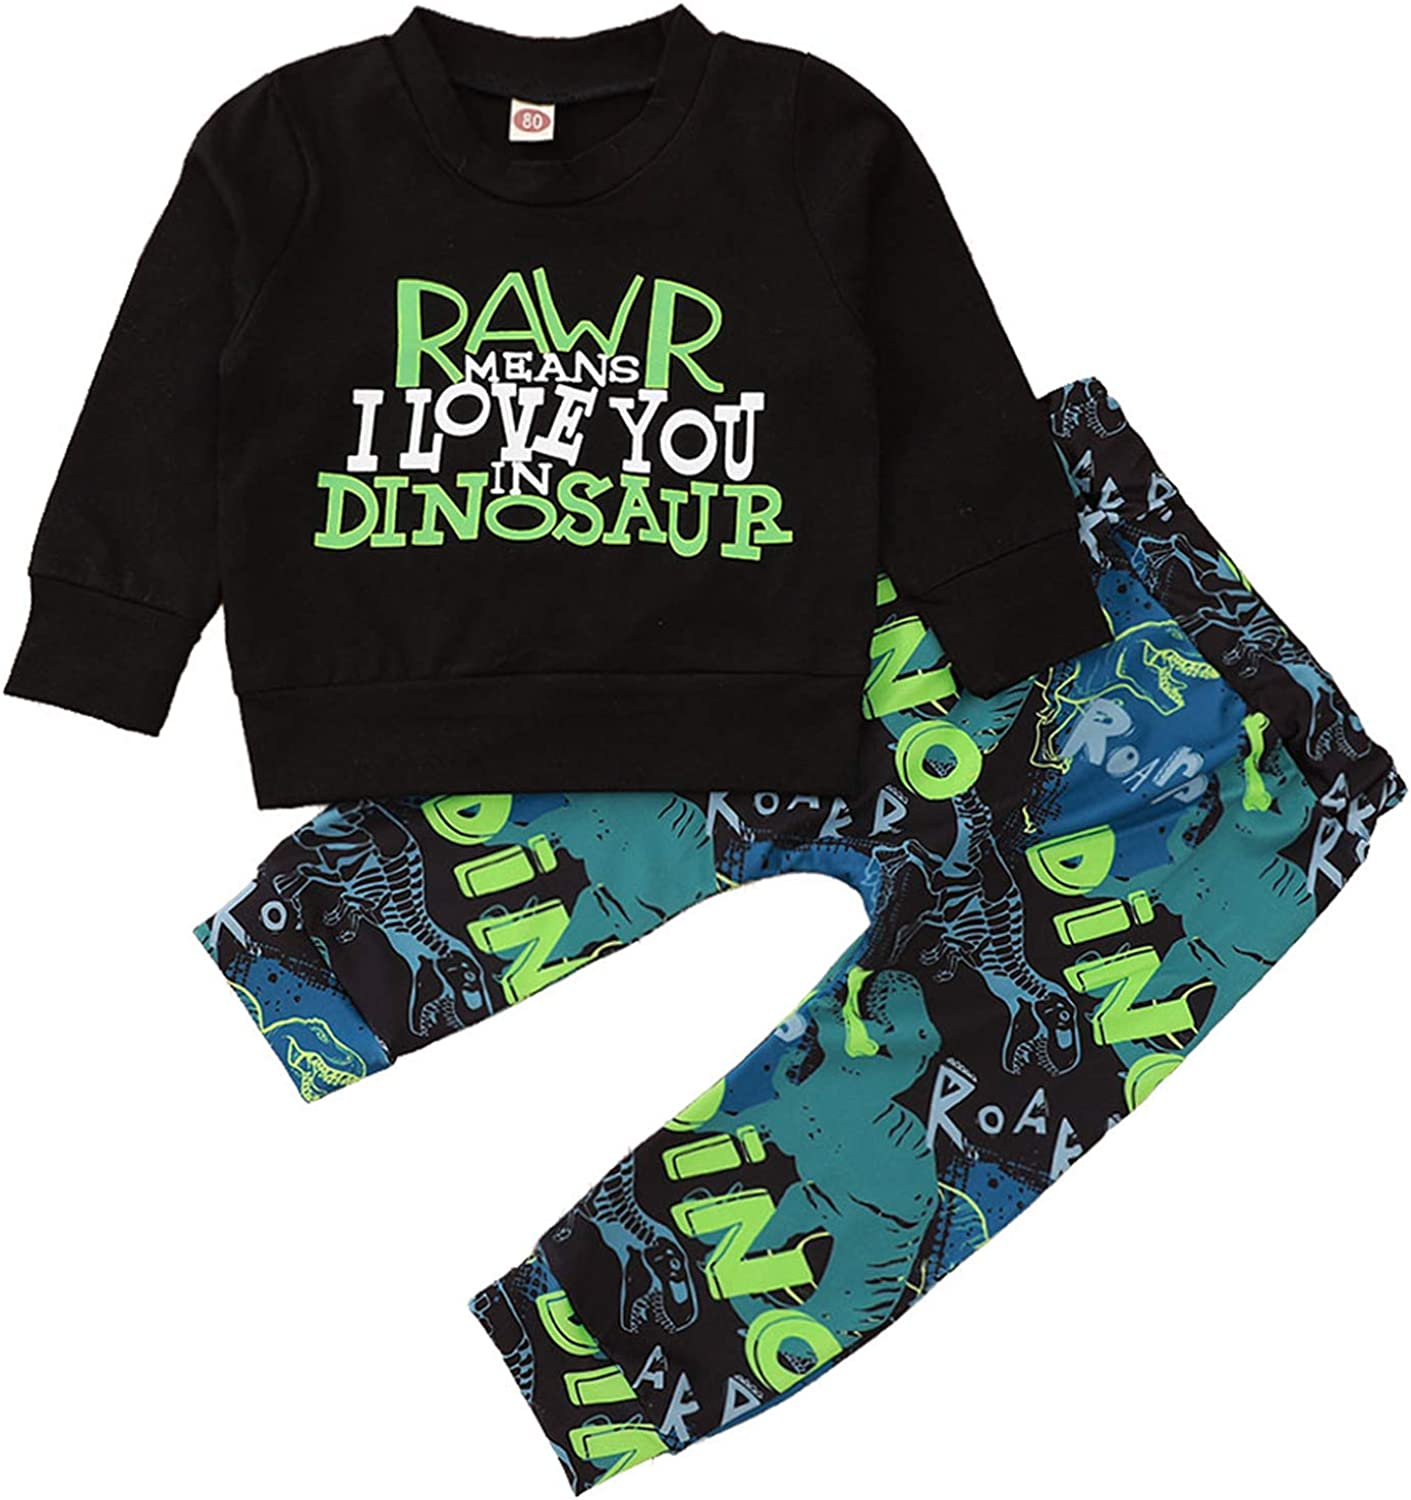 Toddler Infant Baby Boy Rawr Dinosaur Outfits Long Sleeve Top and Pant Fall Winter Clothes Set 2Pcs